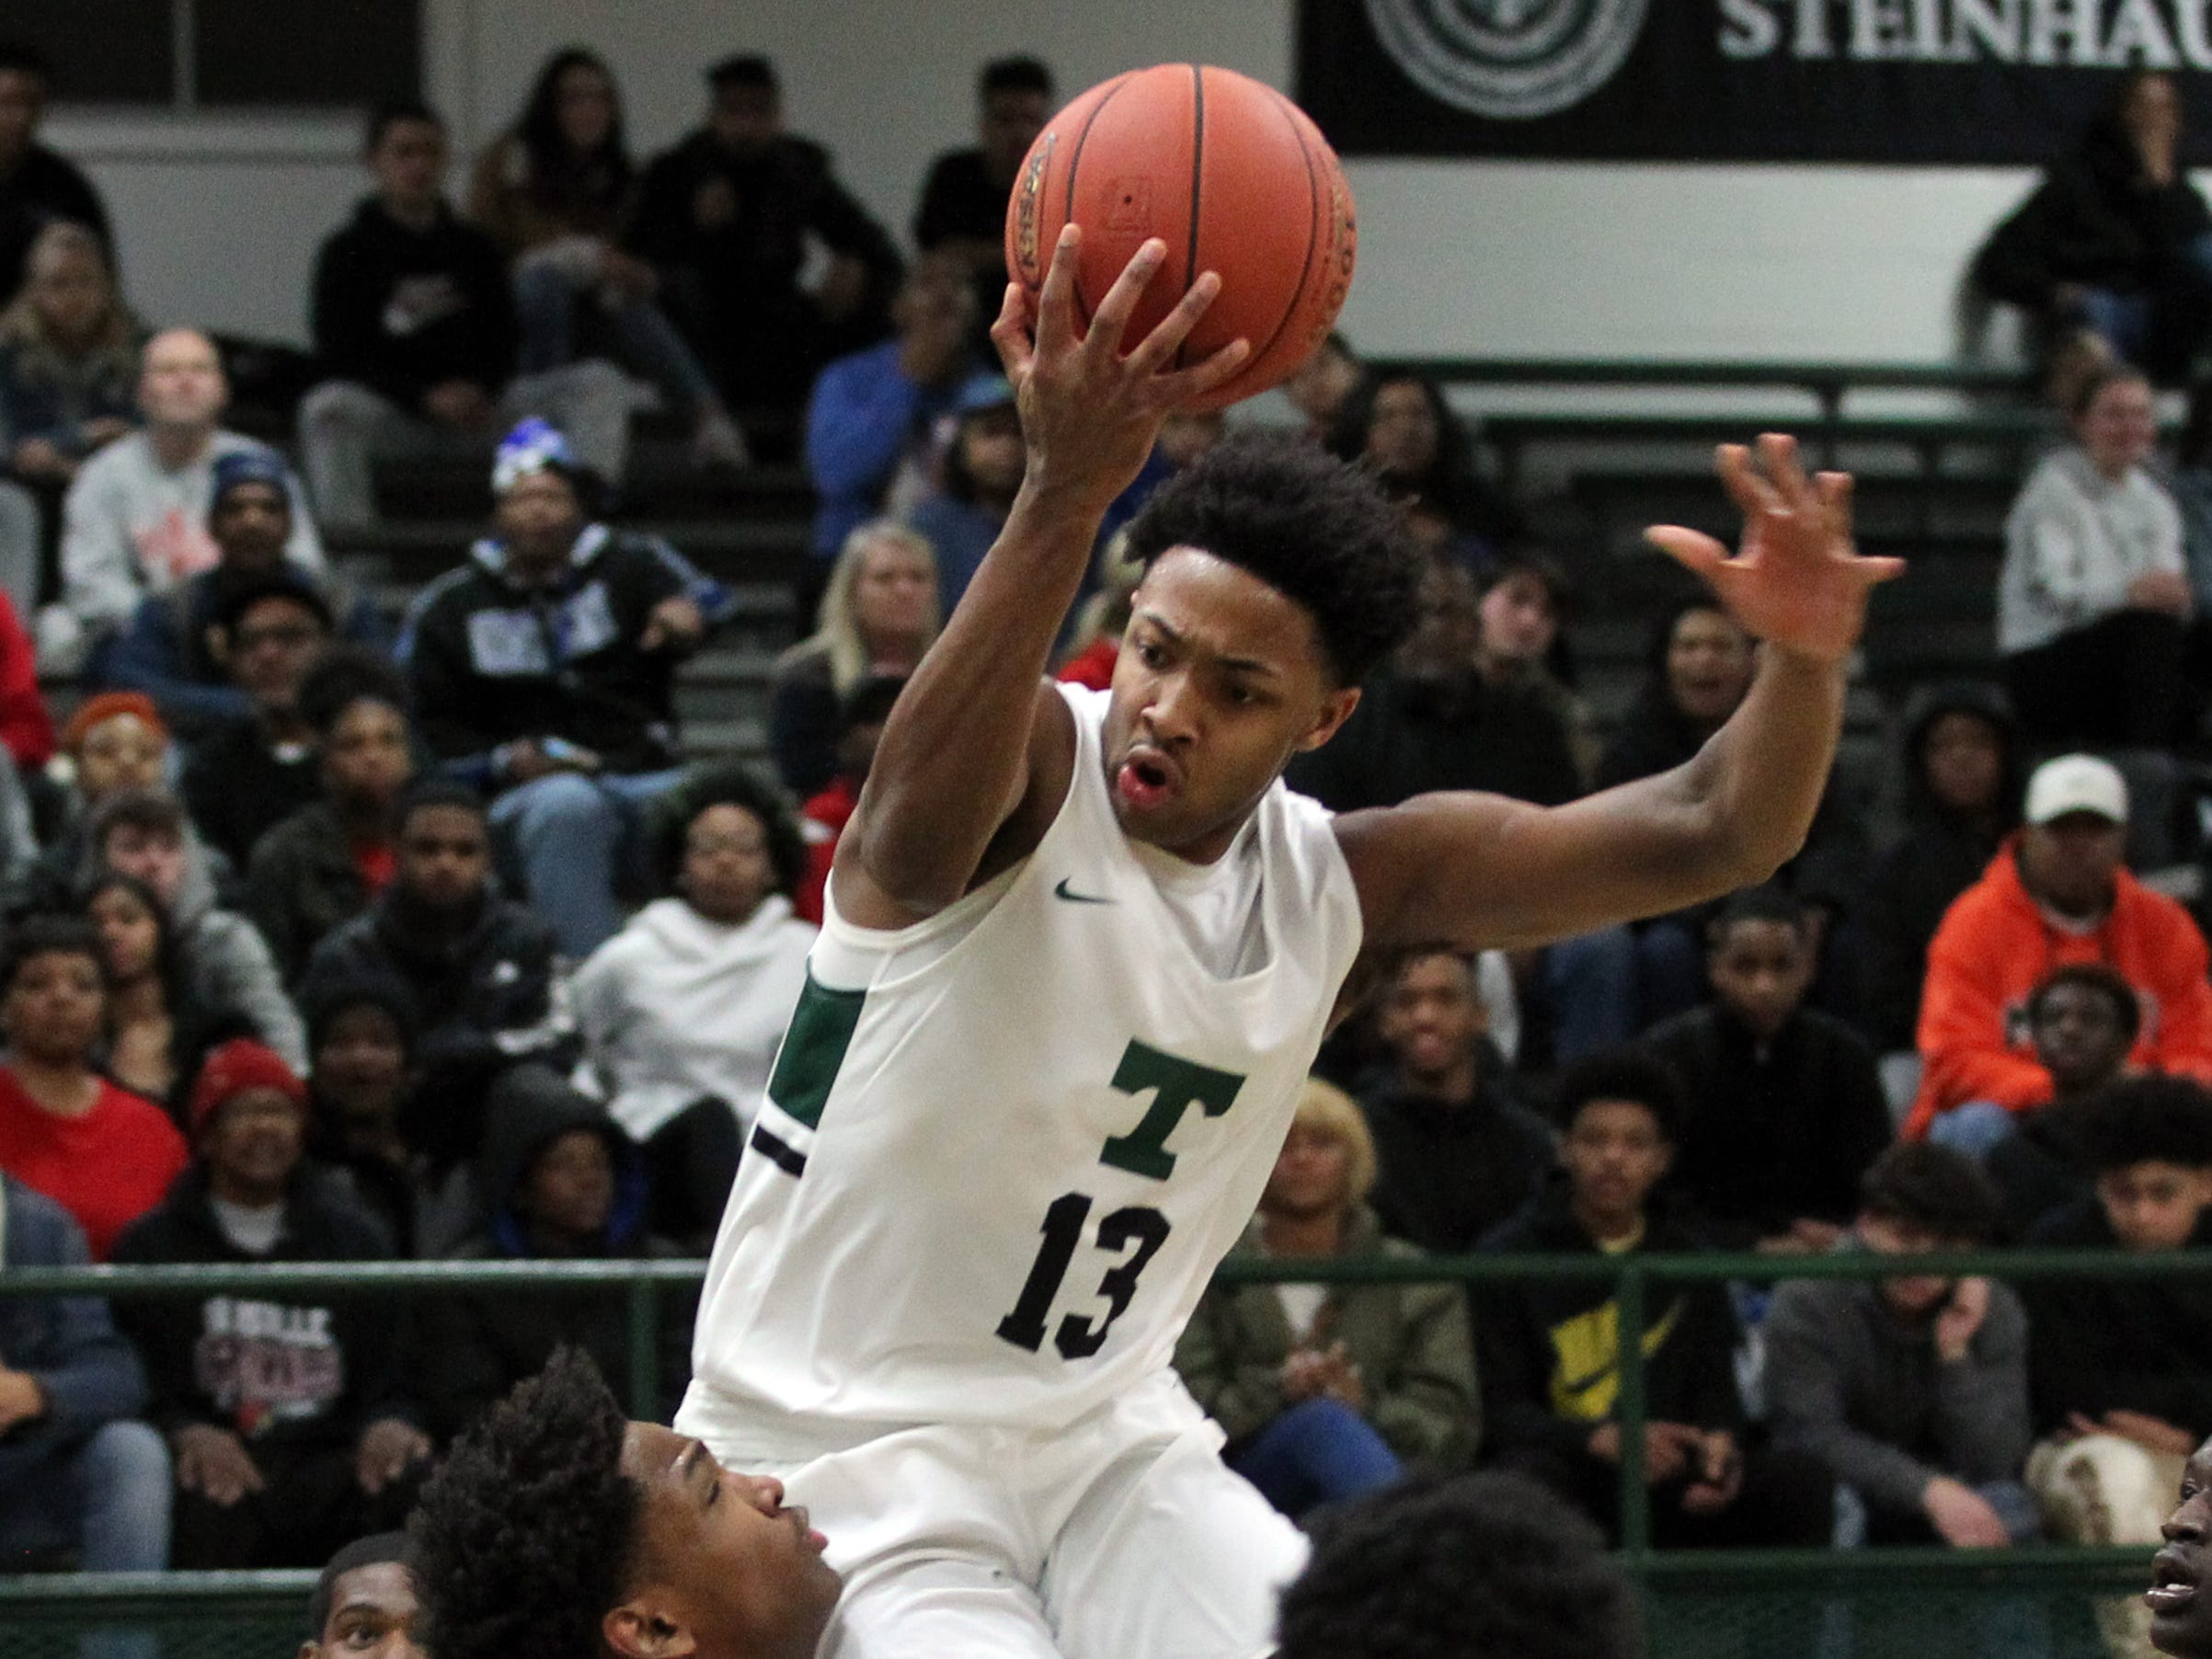 Trinity High School's David Johnson (13) fights for the rebound with Waggener High School's defense  during the first half of play at Trinity High School in Louisville, Kentucky, Jan. 11,  2019.